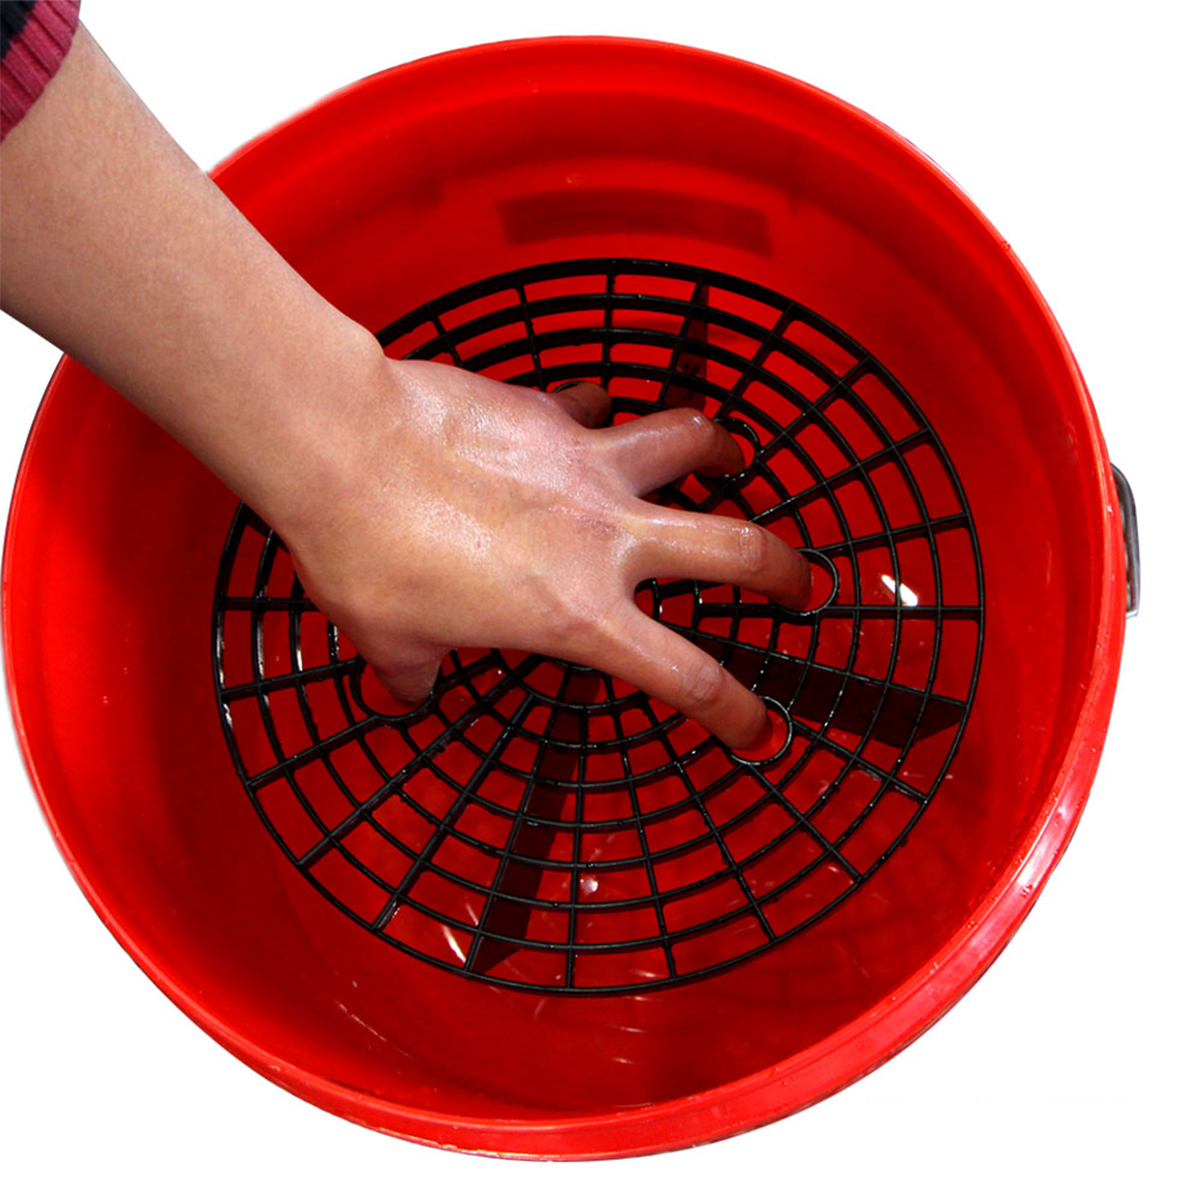 Plastic Car Wash Grit Guard Insert Washboard Water Bucket Filter Scratch Dirt Preventing Tool